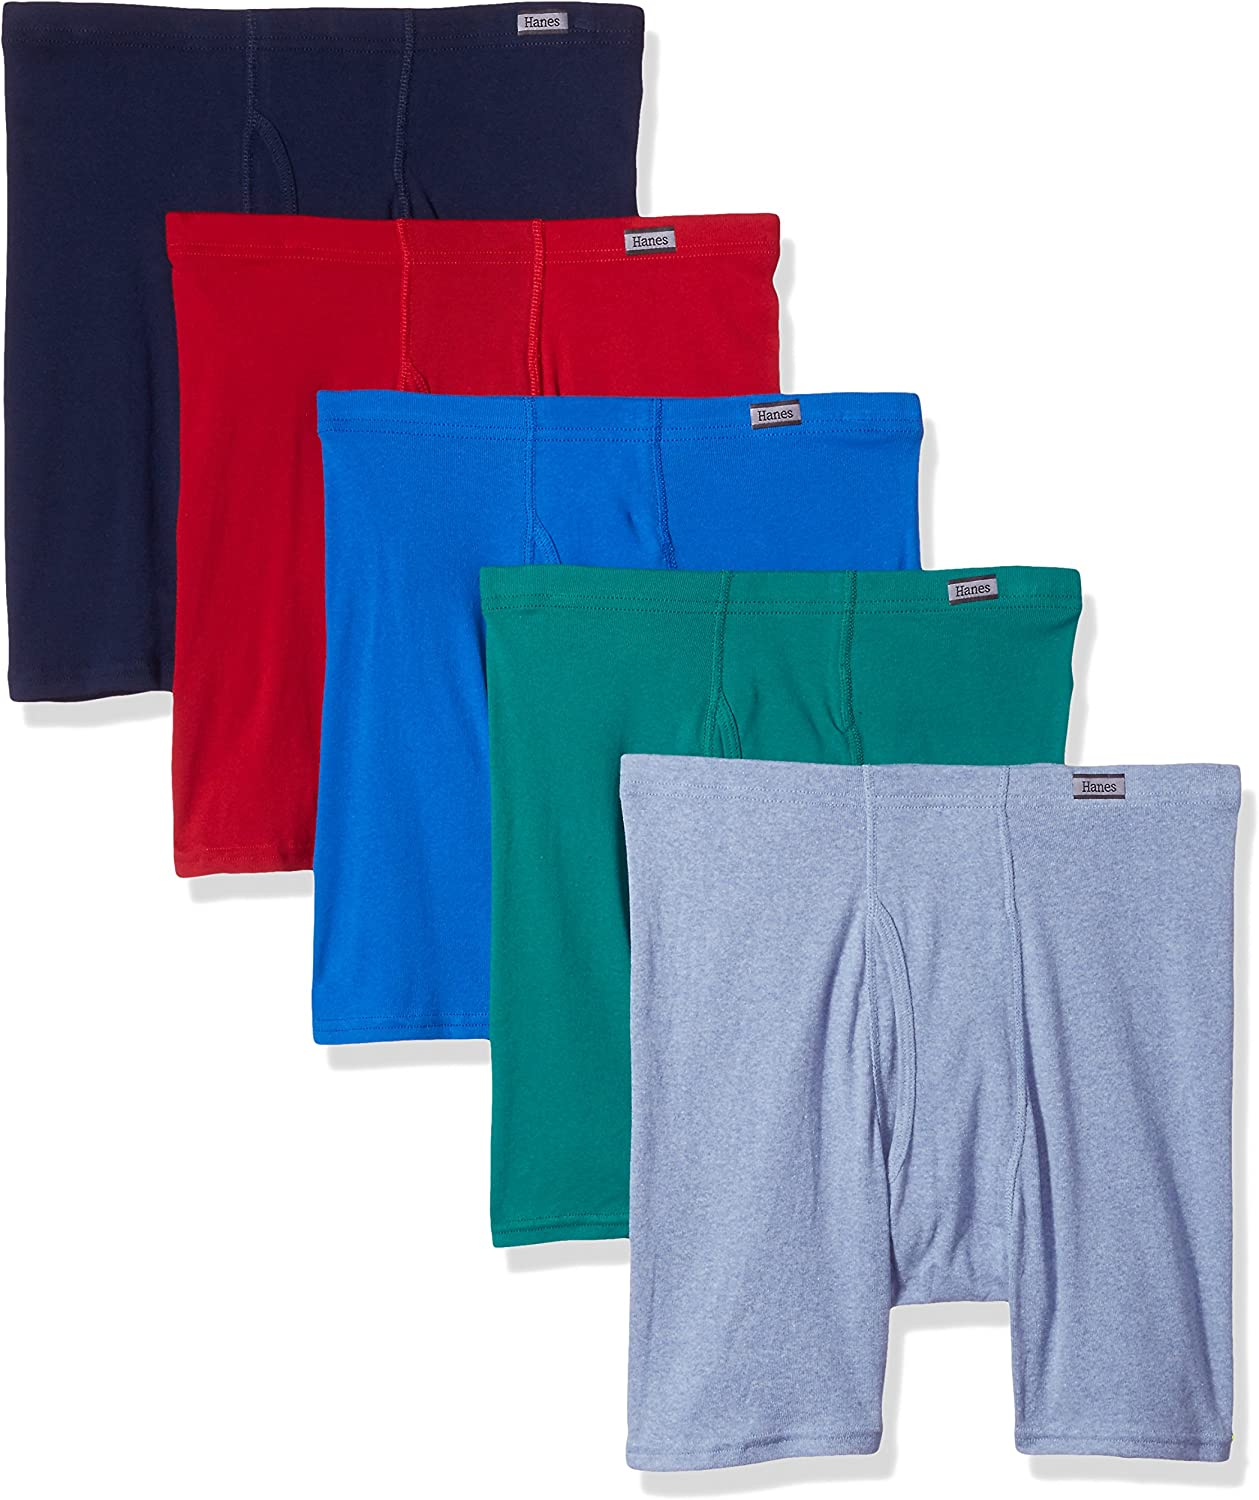 Assorted Colors 5 Pack Large Mens Boxer Briefs With Covered Waistband